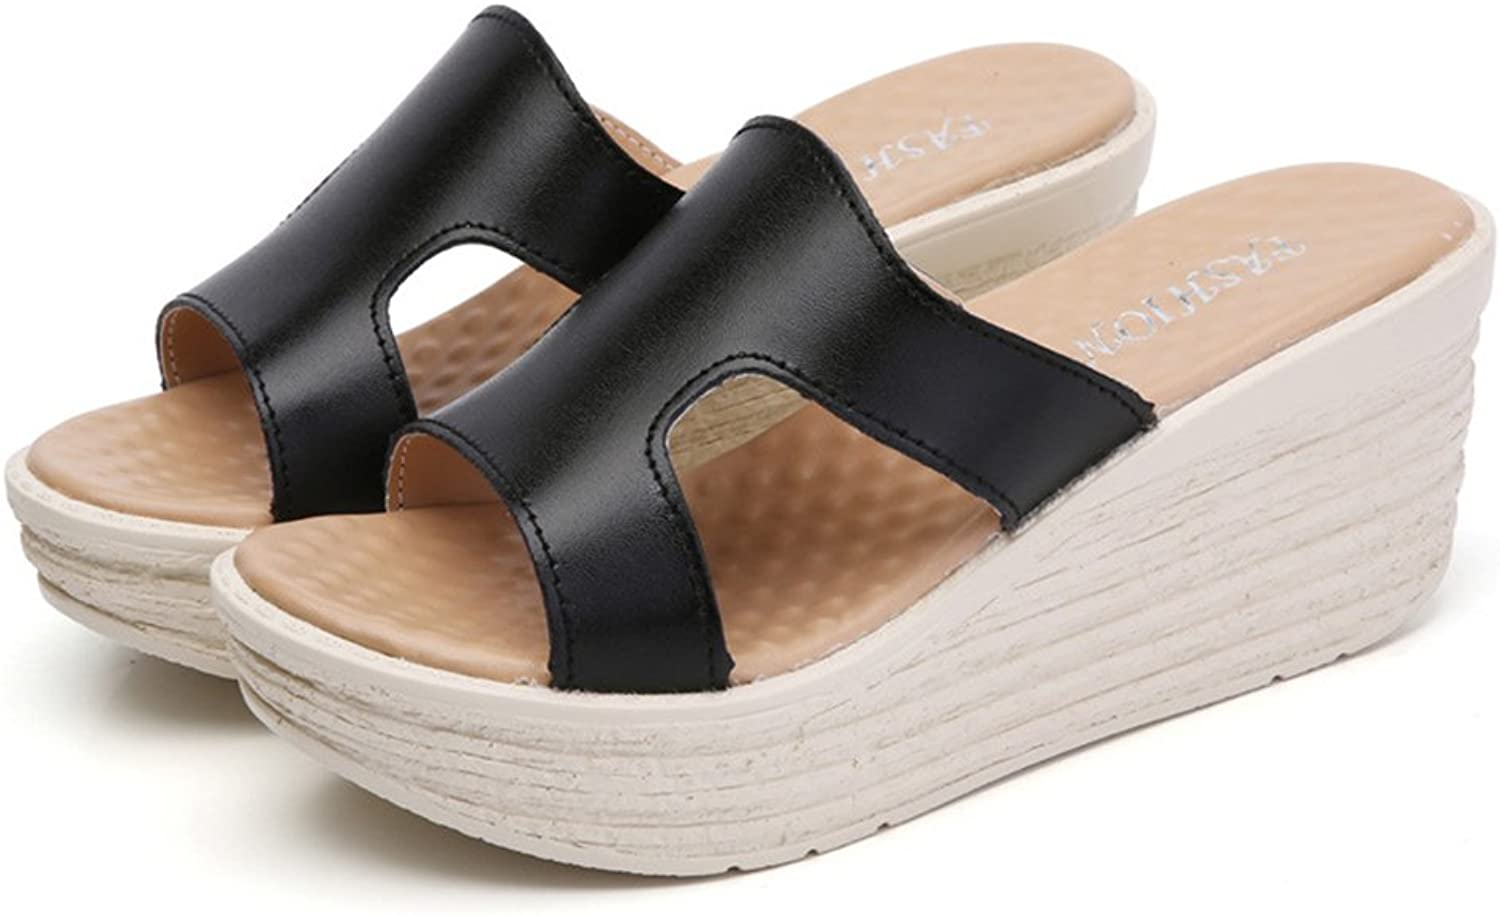 Mubeuo Women's Casual Leather Fashion Wedge Sandals